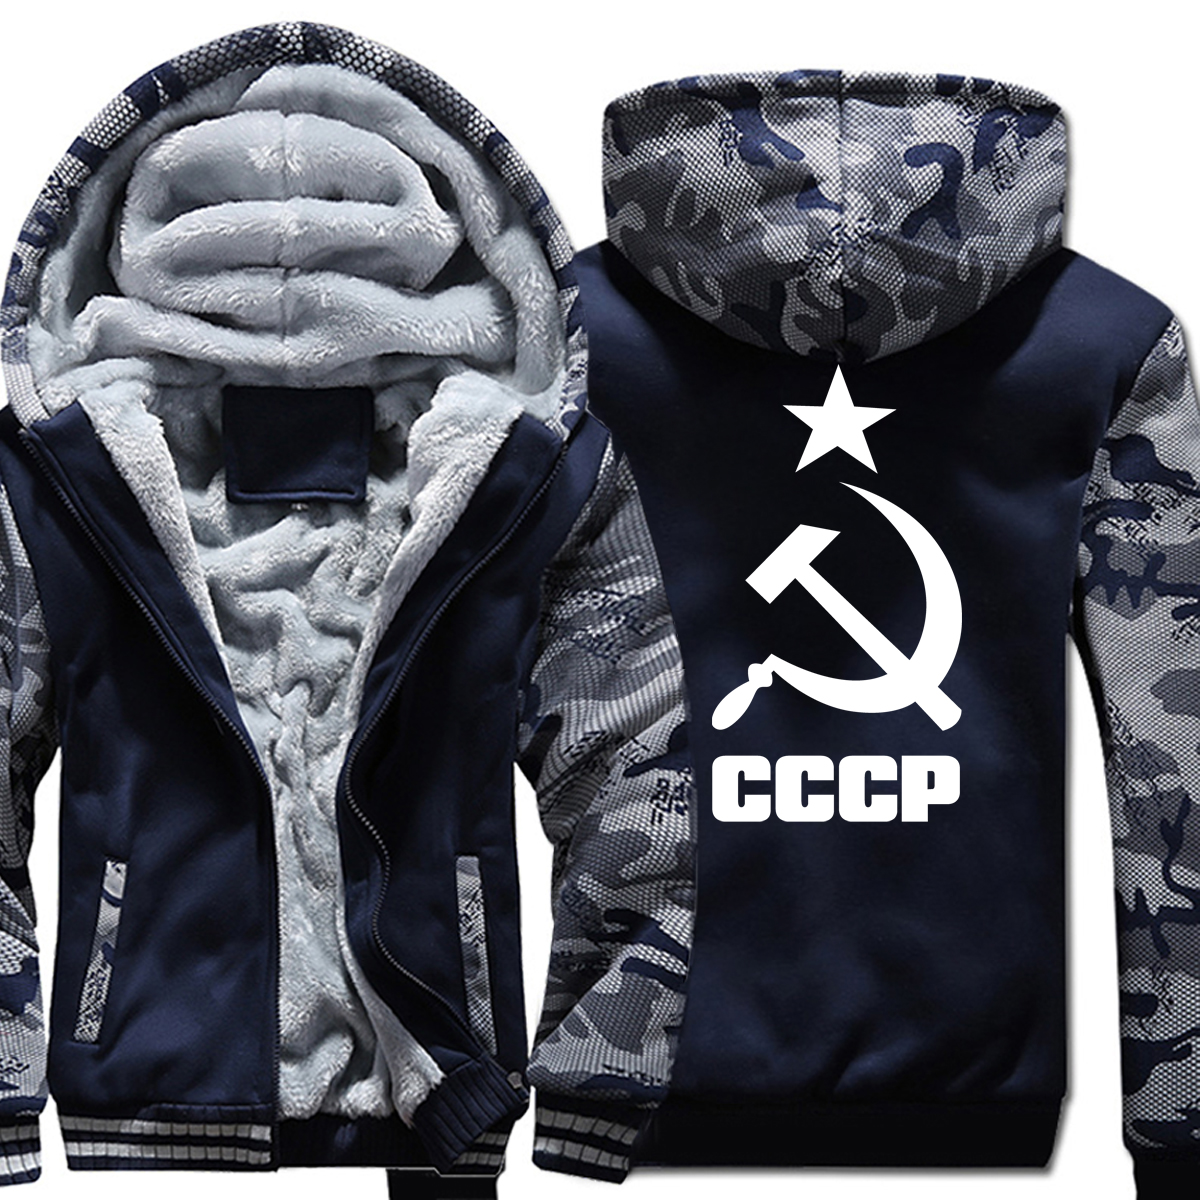 Men Sportswear 2019 Hot Printed Fleece Hoody USSR Soviet Union KGB Men Sweatshirt Hoodies Harajuku Tracksuits For Men Clothing